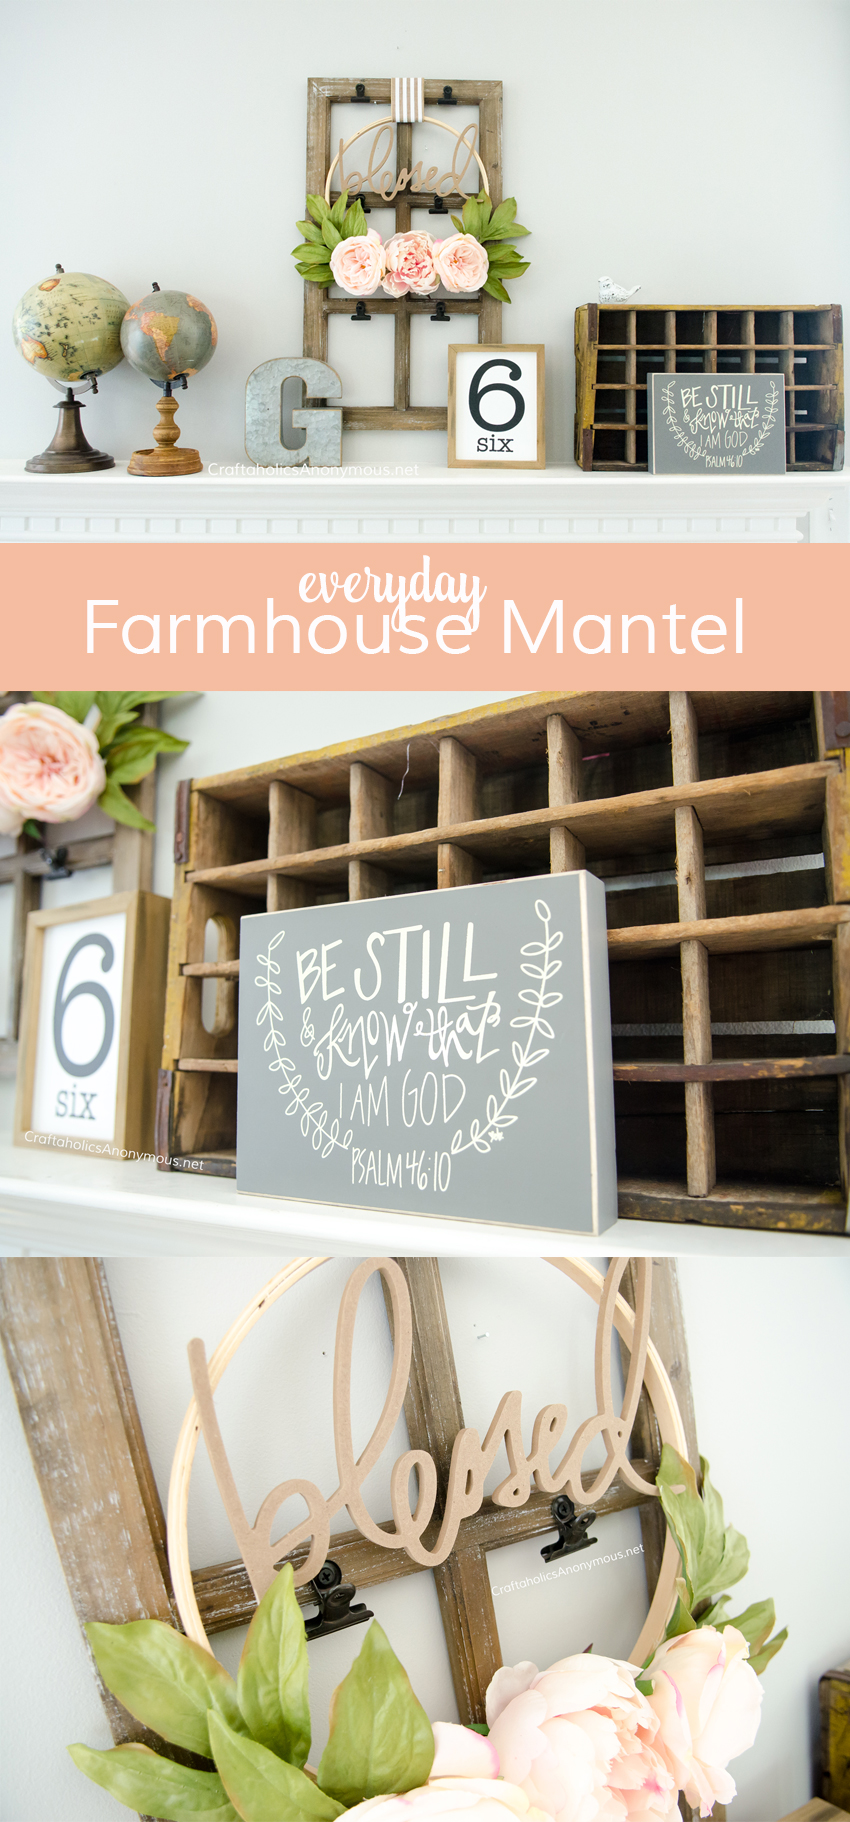 DIY Everyday Farmhouse mantel decor